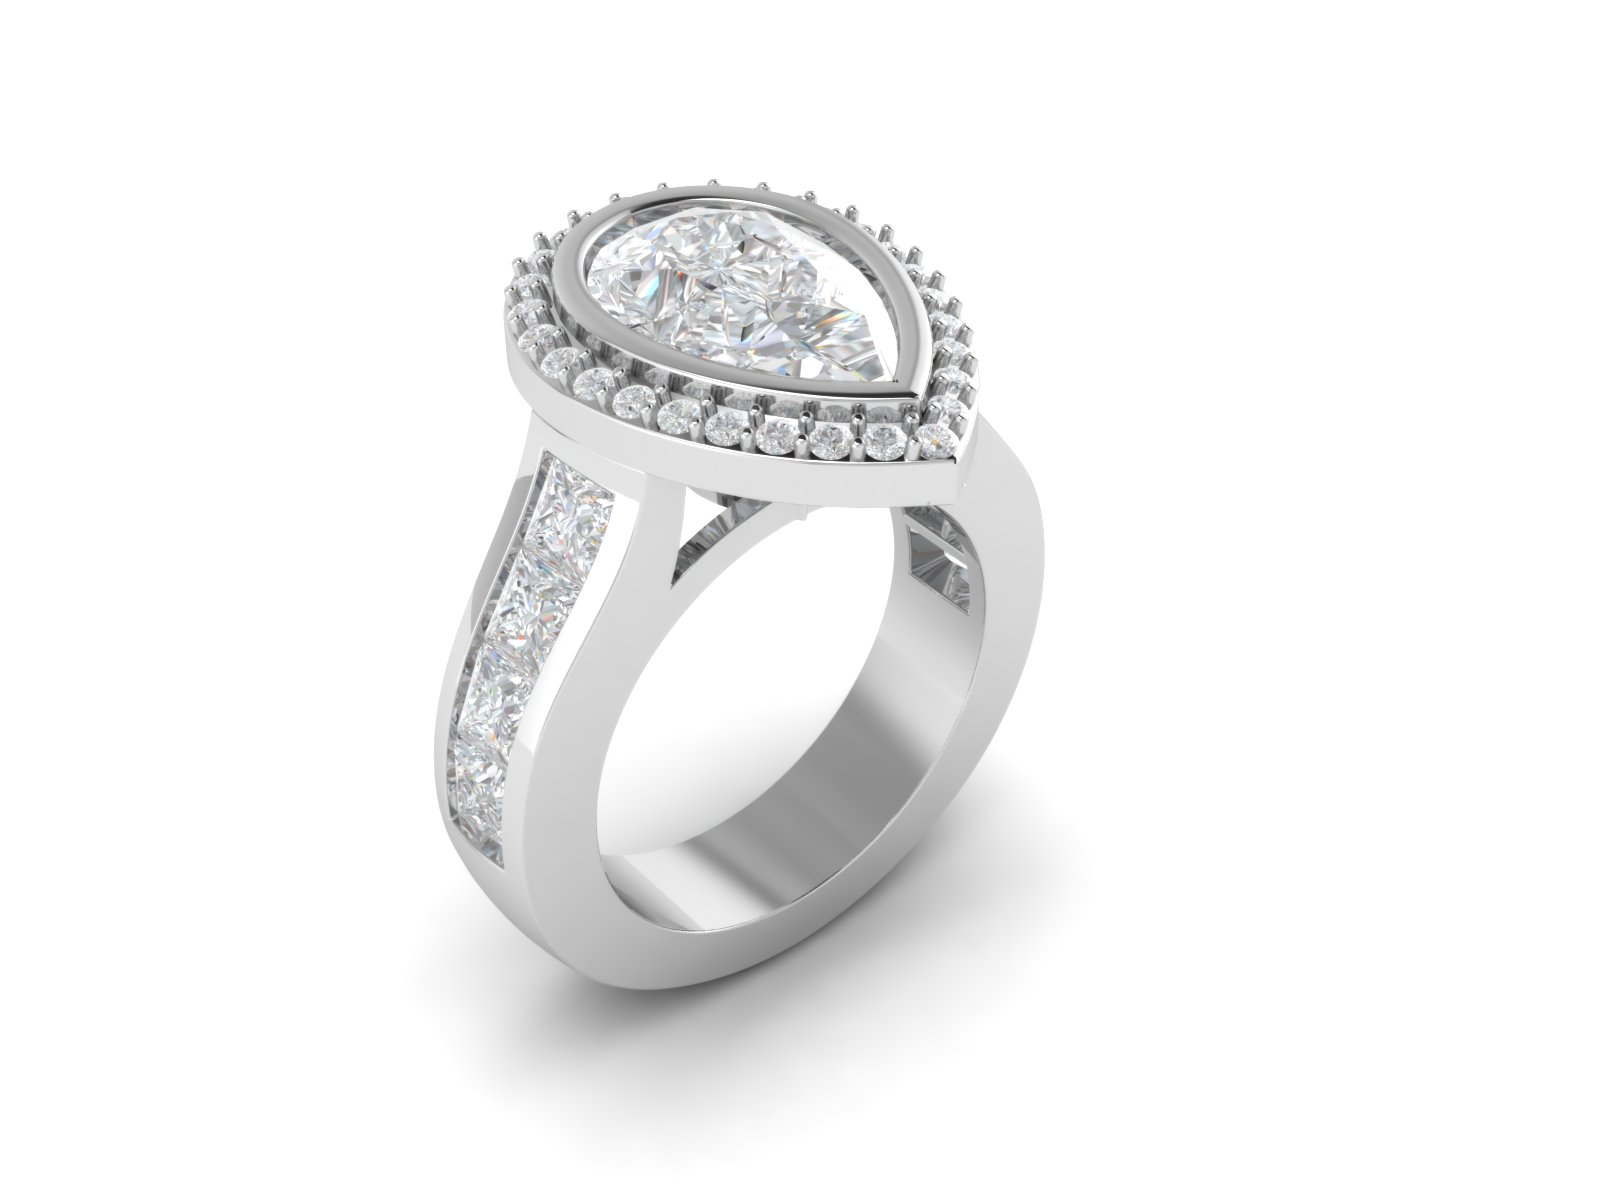 Elite fine jewelry crafting coupons near me in richardson for Local jewelry stores near me